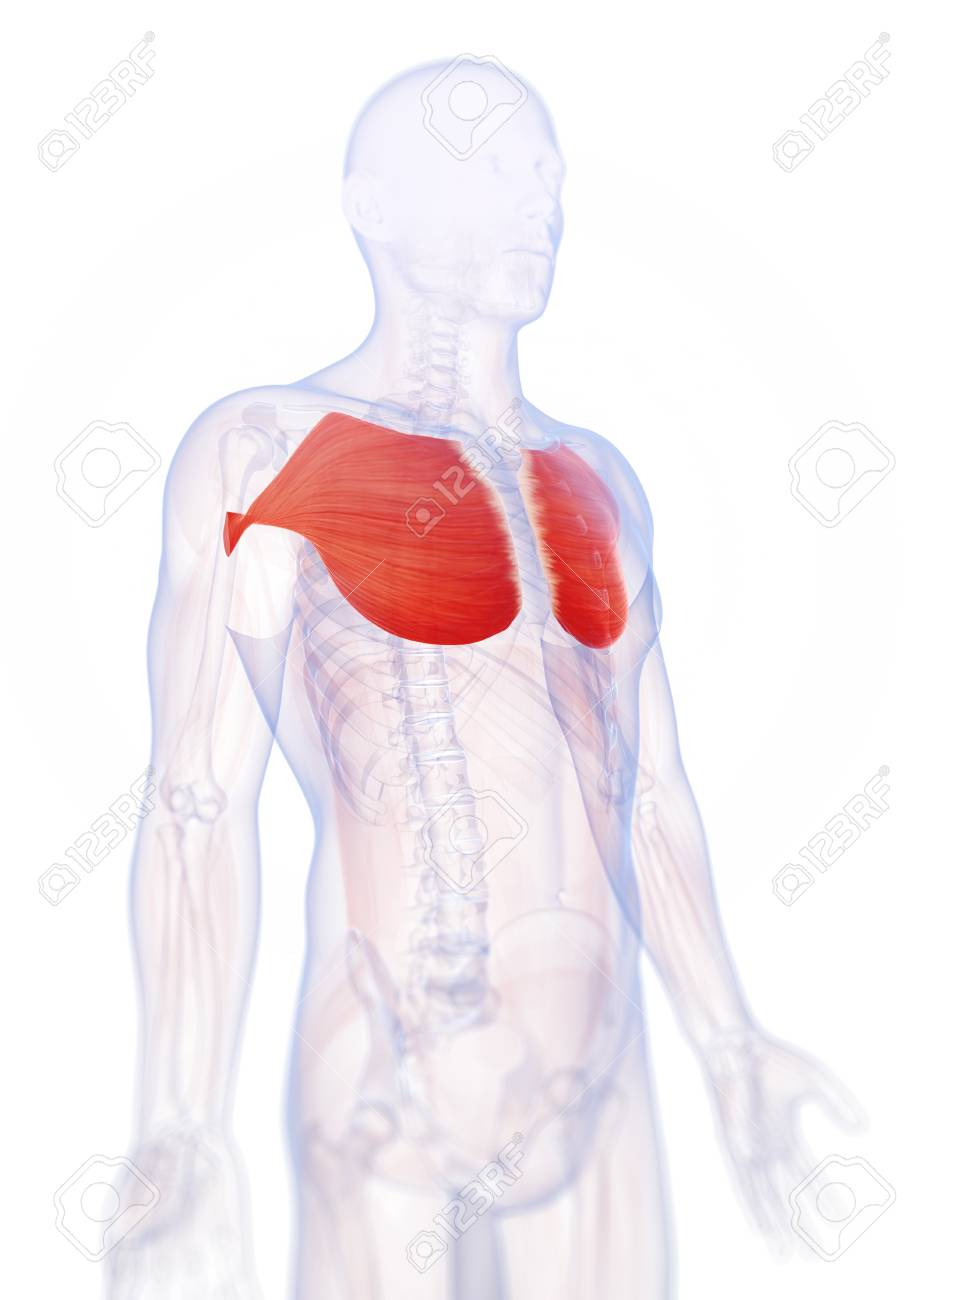 Human Chest Muscles Illustration Stock Photo Picture And Royalty